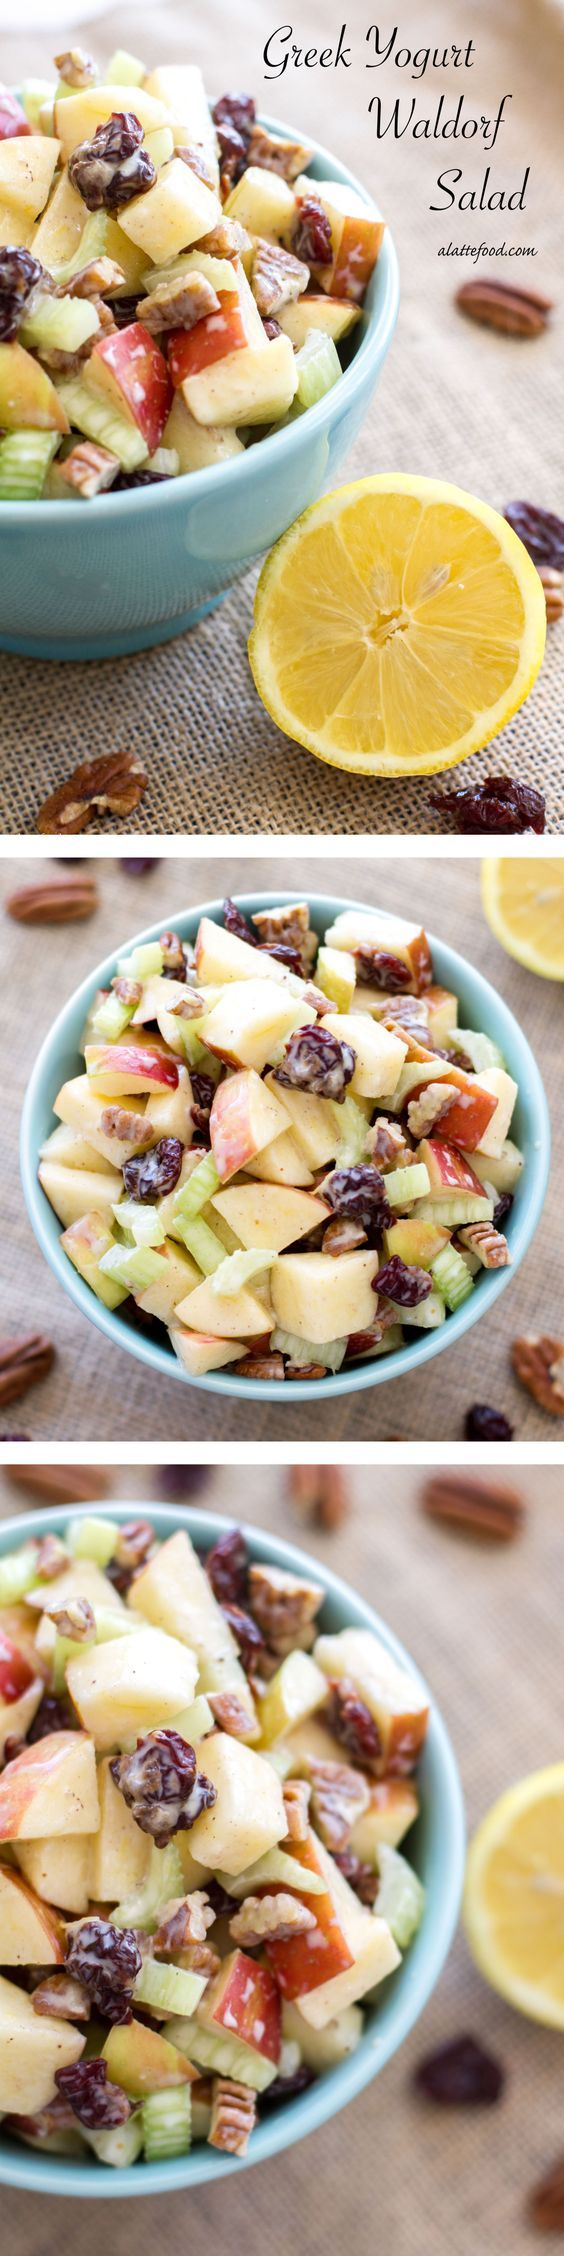 This spin on the classic Waldorf Salad uses Greek yogurt instead of mayonnaise lemon juice and a couple other additional ingredients to give it a fresh new flavor.